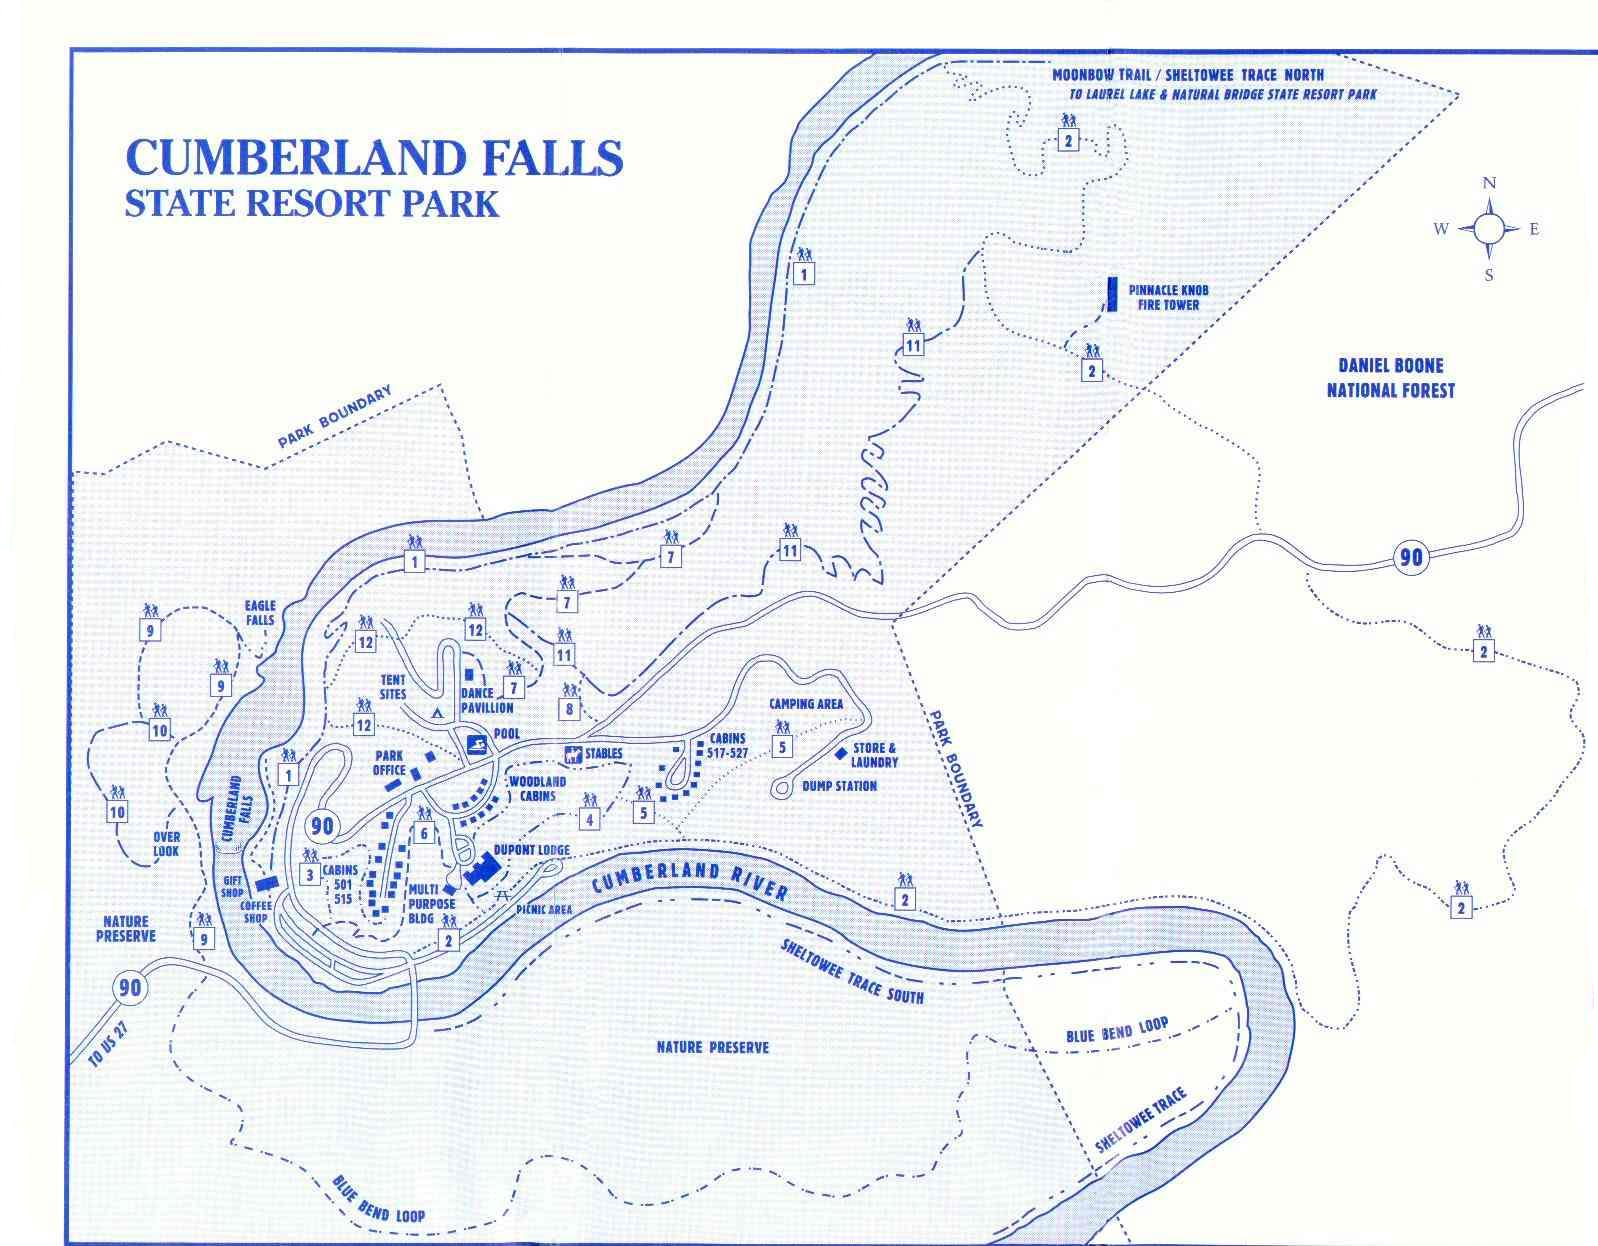 berland Falls, Kentucky on boonesborough map, kentucky state park reservations, daniel boone national forest camping map, hoffmaster state park mi map, pennyrile ky map, state of california beaches map, kentucky bourbon distillers map, grayson lake bruin map, red river gorge camping map, kentucky bourbon trail map, tom sawyer park map, carter caves state park map, world's end state park map, michigan state park campgrounds map, green river ky fishing map, gulf state park camping map, wilderness state park campground map, land between the lakes camping map, long key state park campground map, mirror lake wi map,